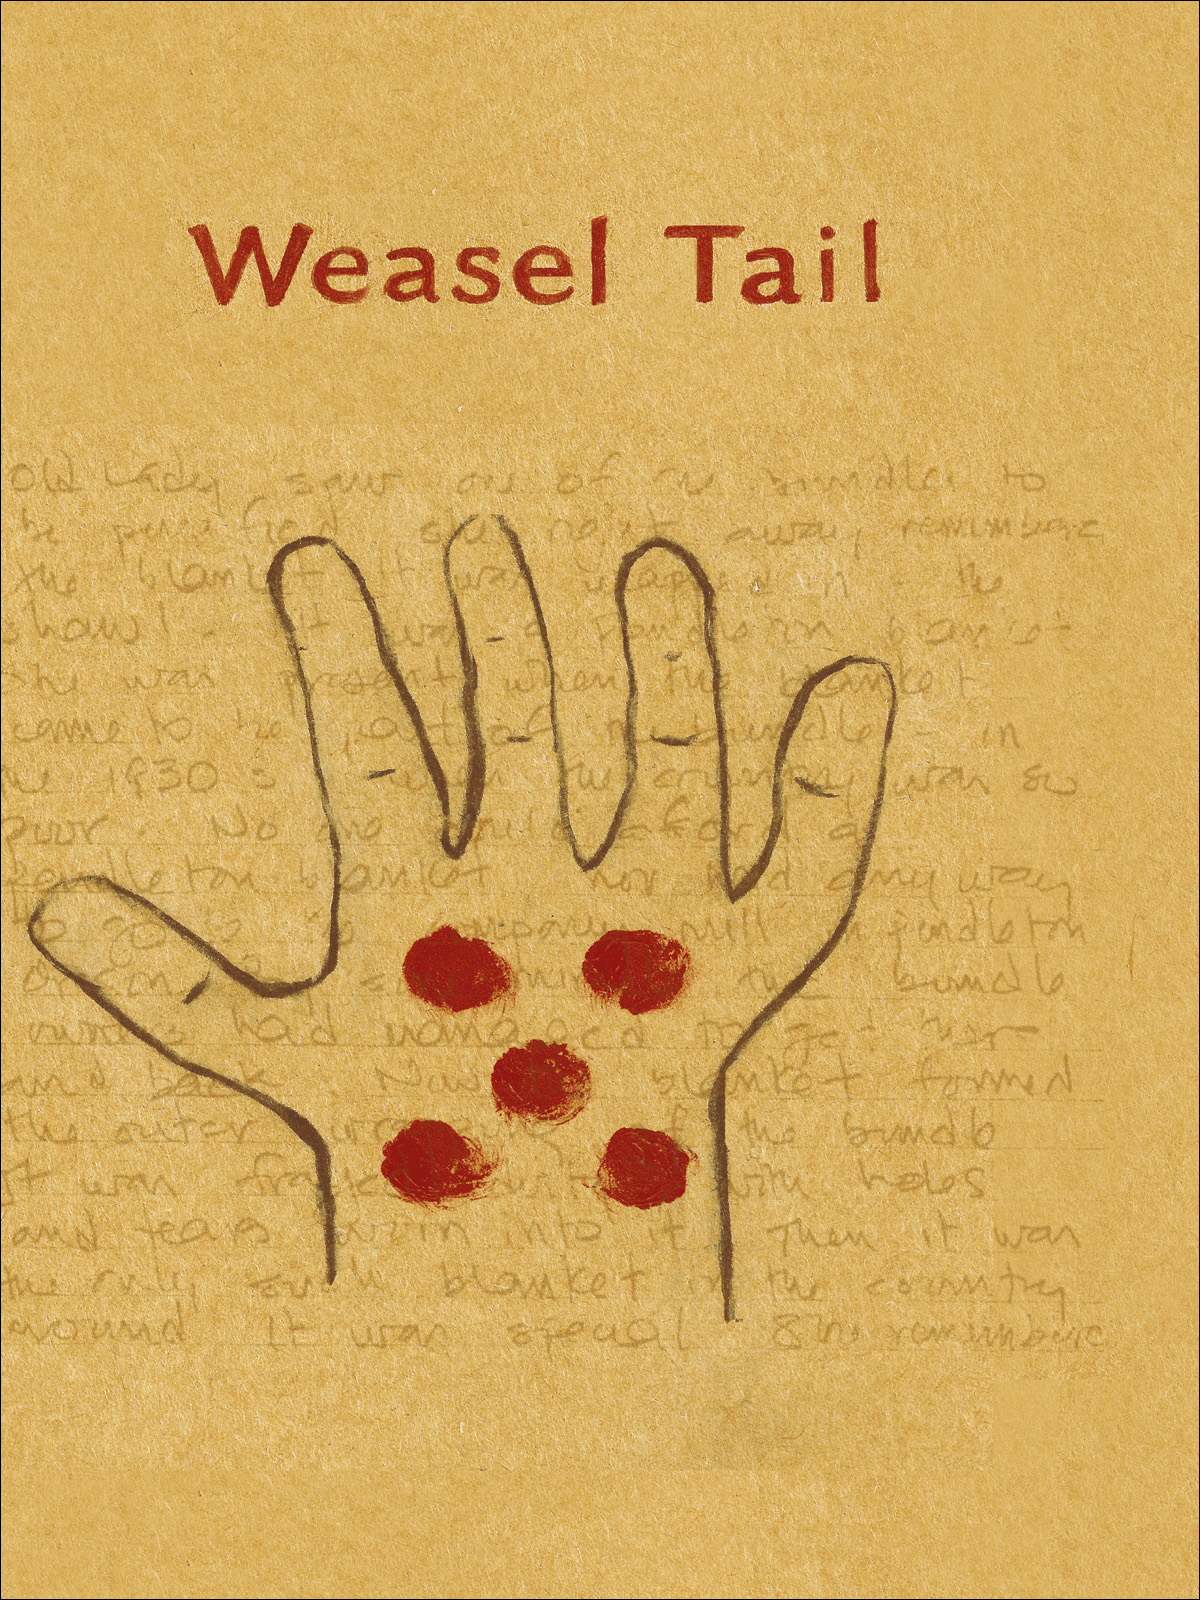 Weasel Tail